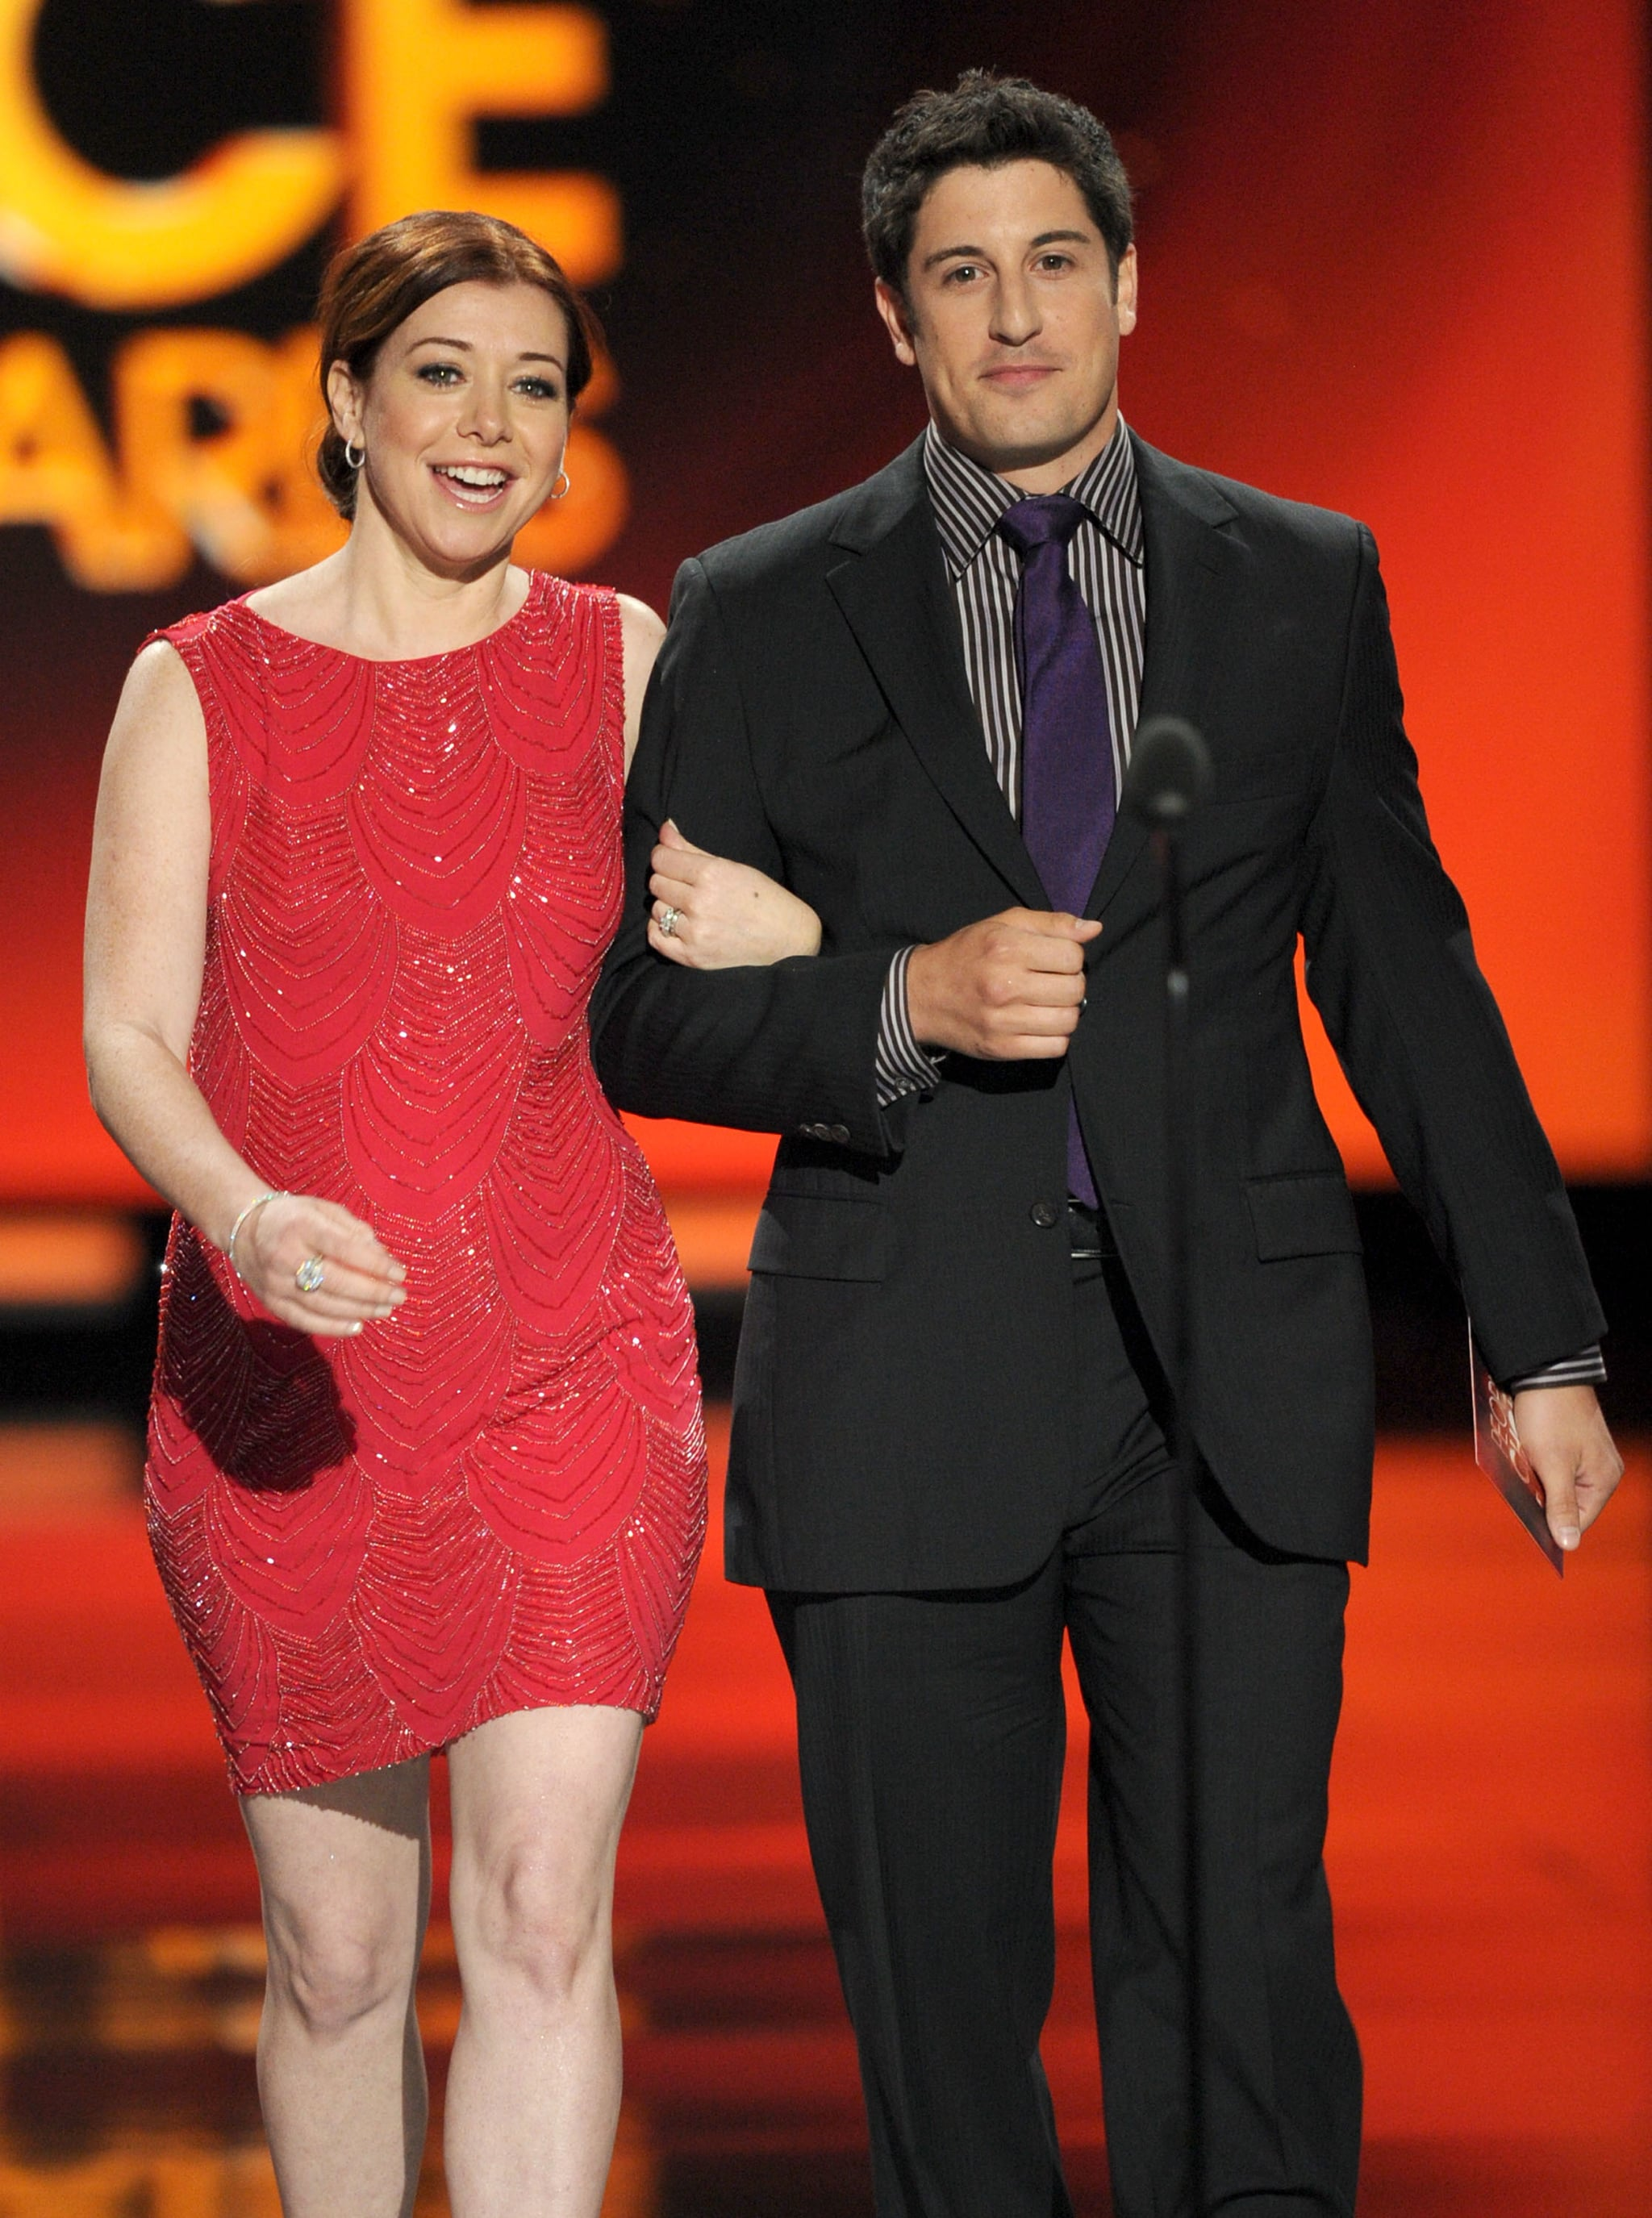 Alyson Hannigan and Jason Biggs